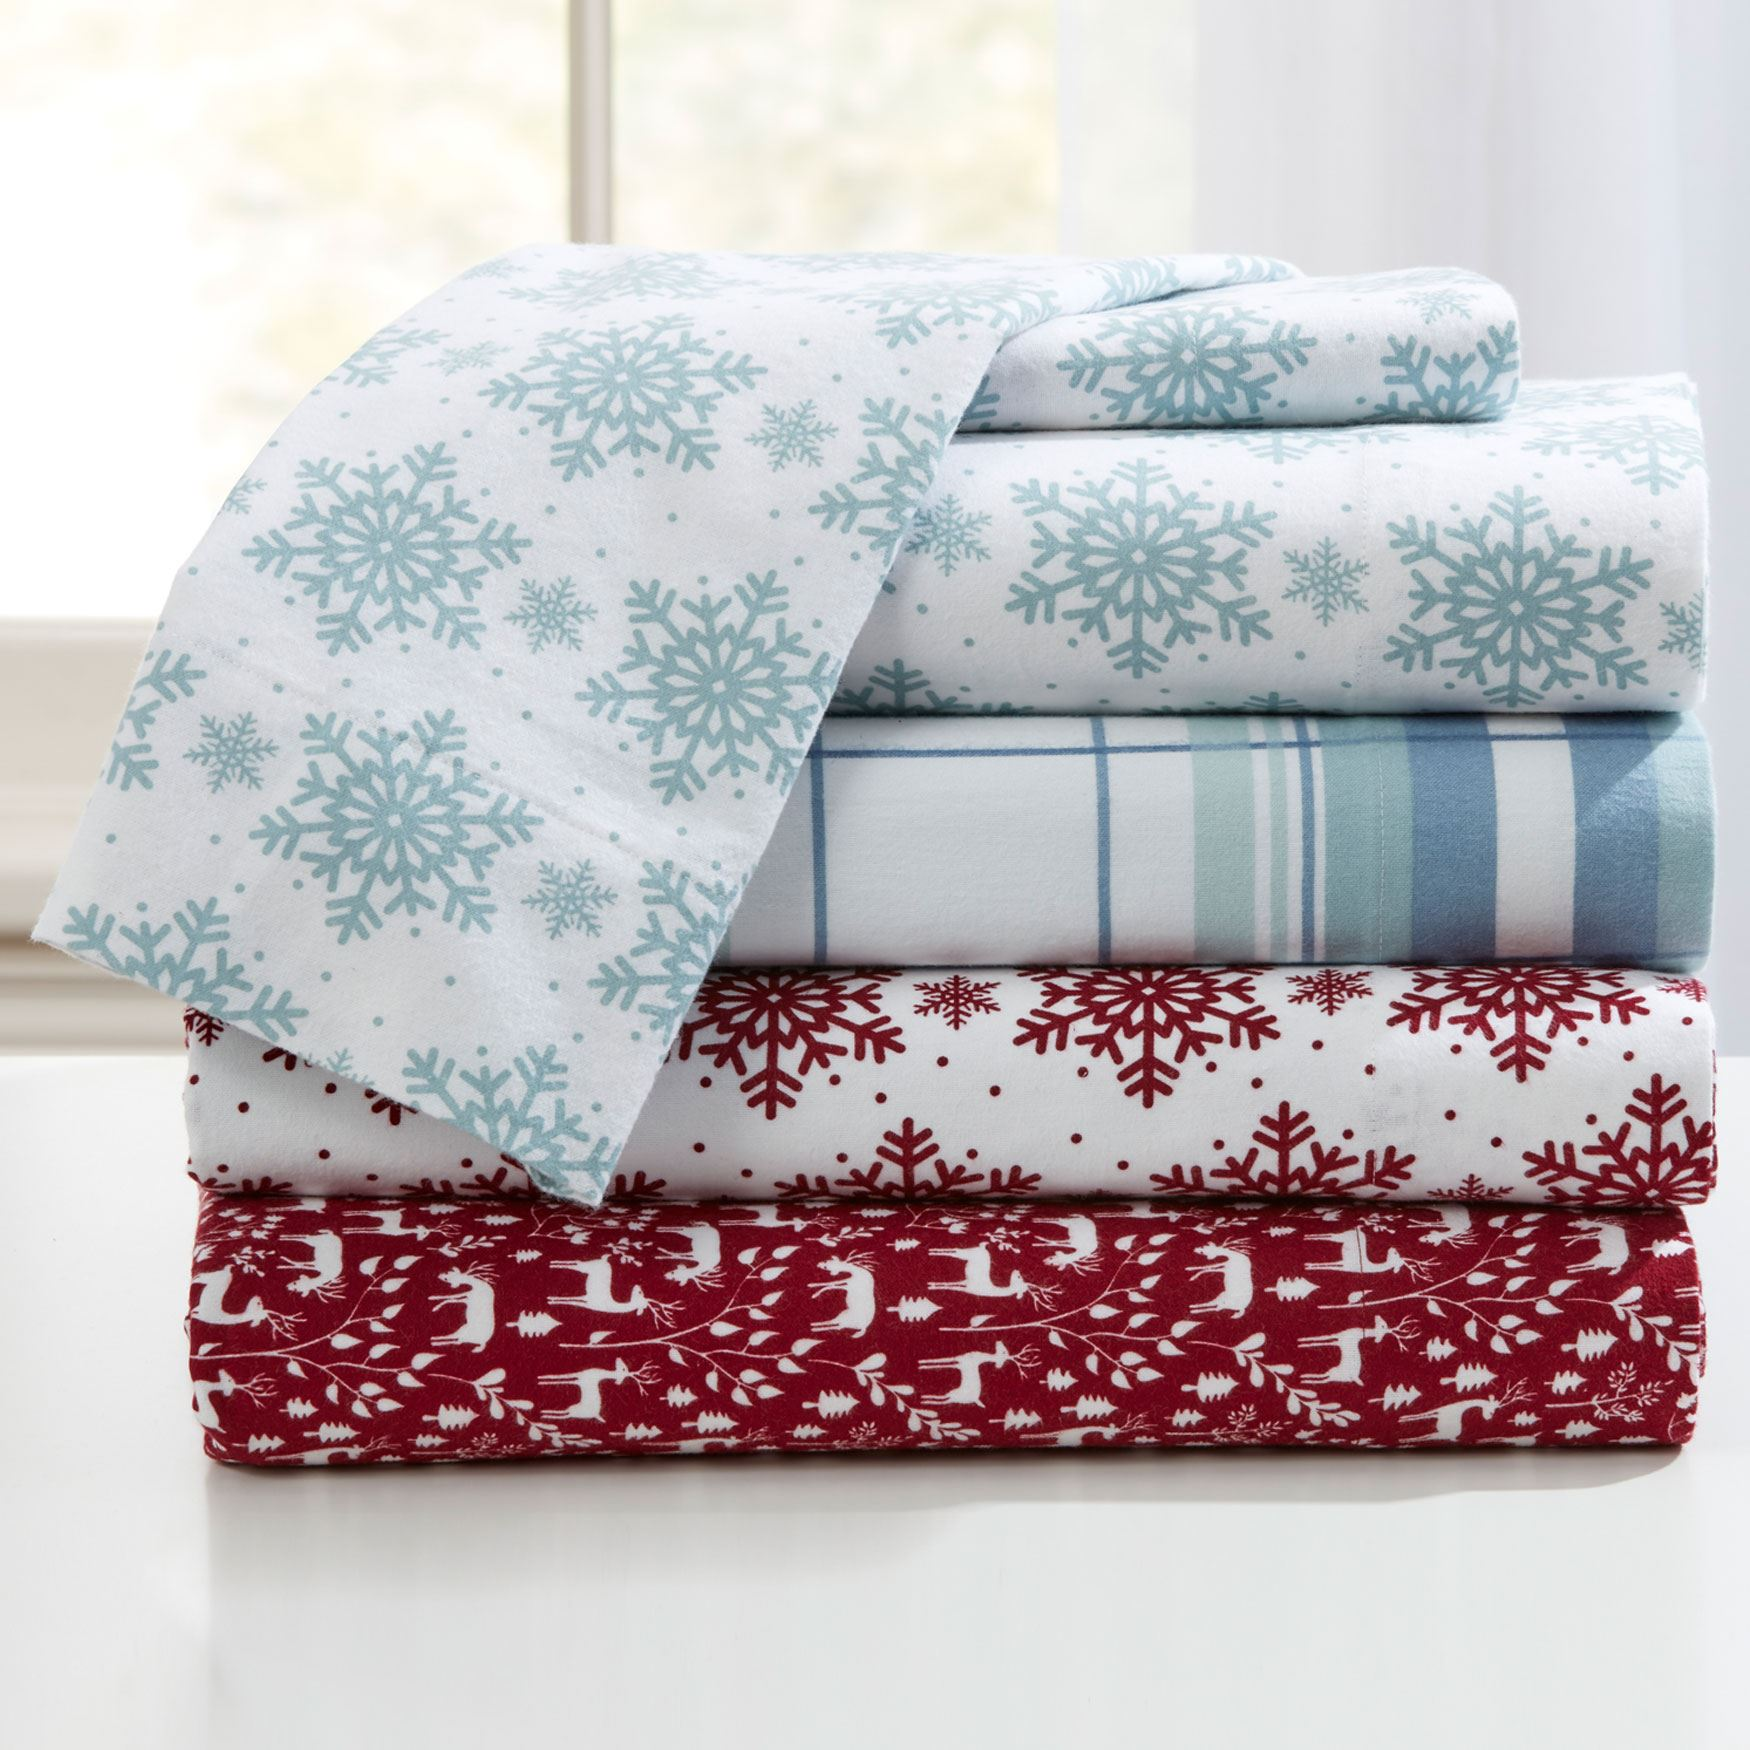 Cotton Flannel Sheet Collection,